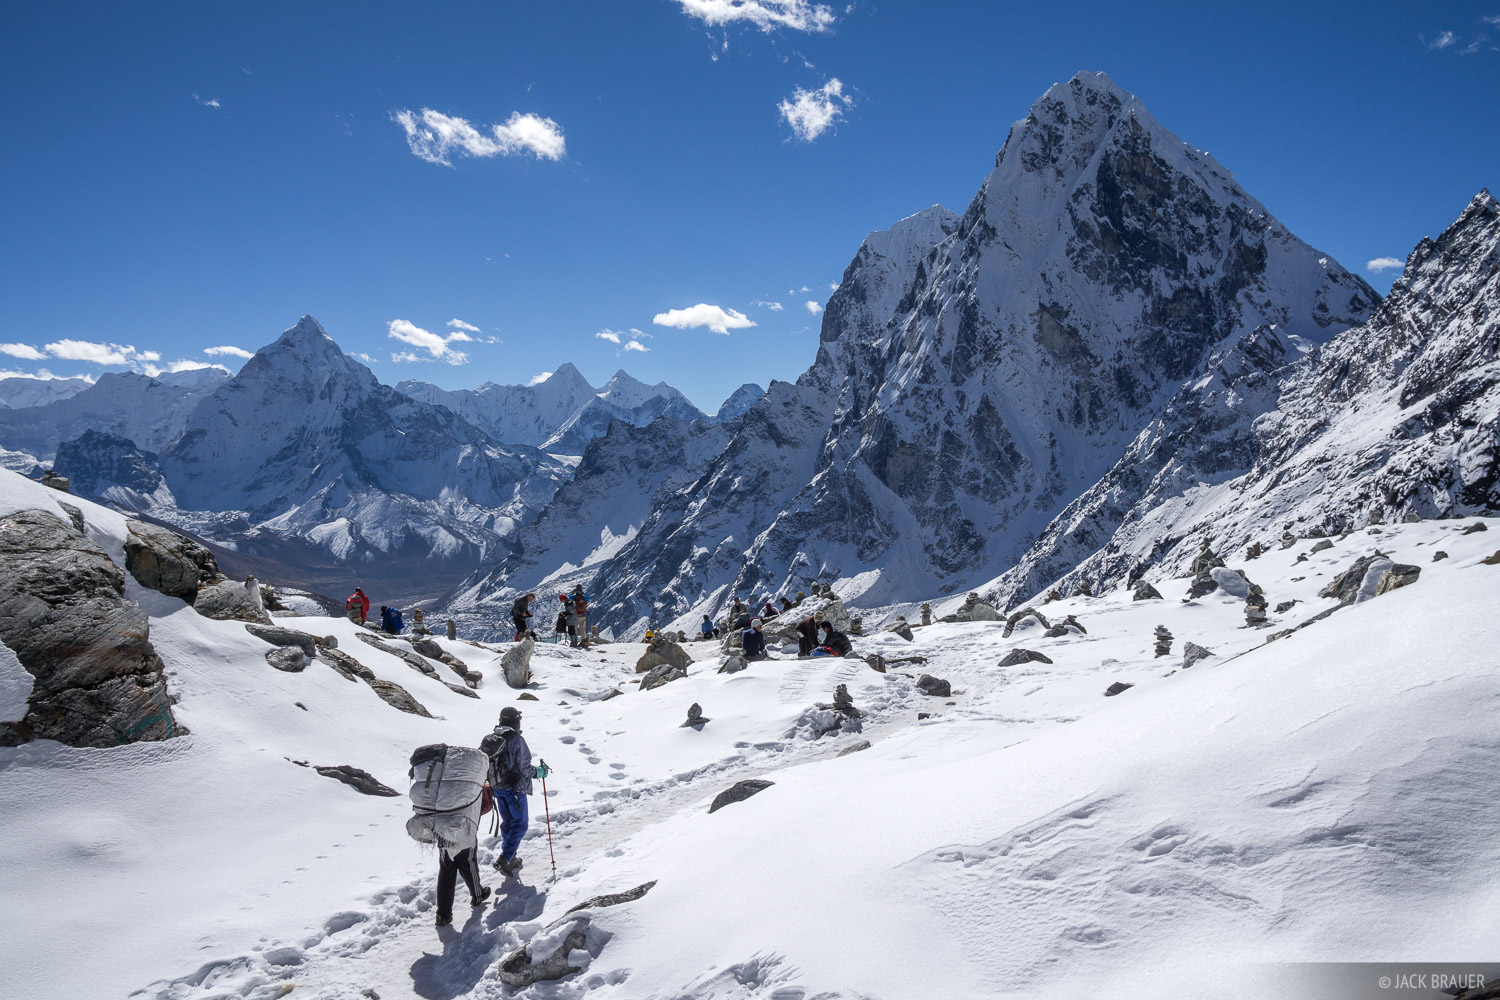 Ama Dablam,Asia,Cho La Pass,Cholatse,Himalaya,Khumbu,Nepal, hiking, photo